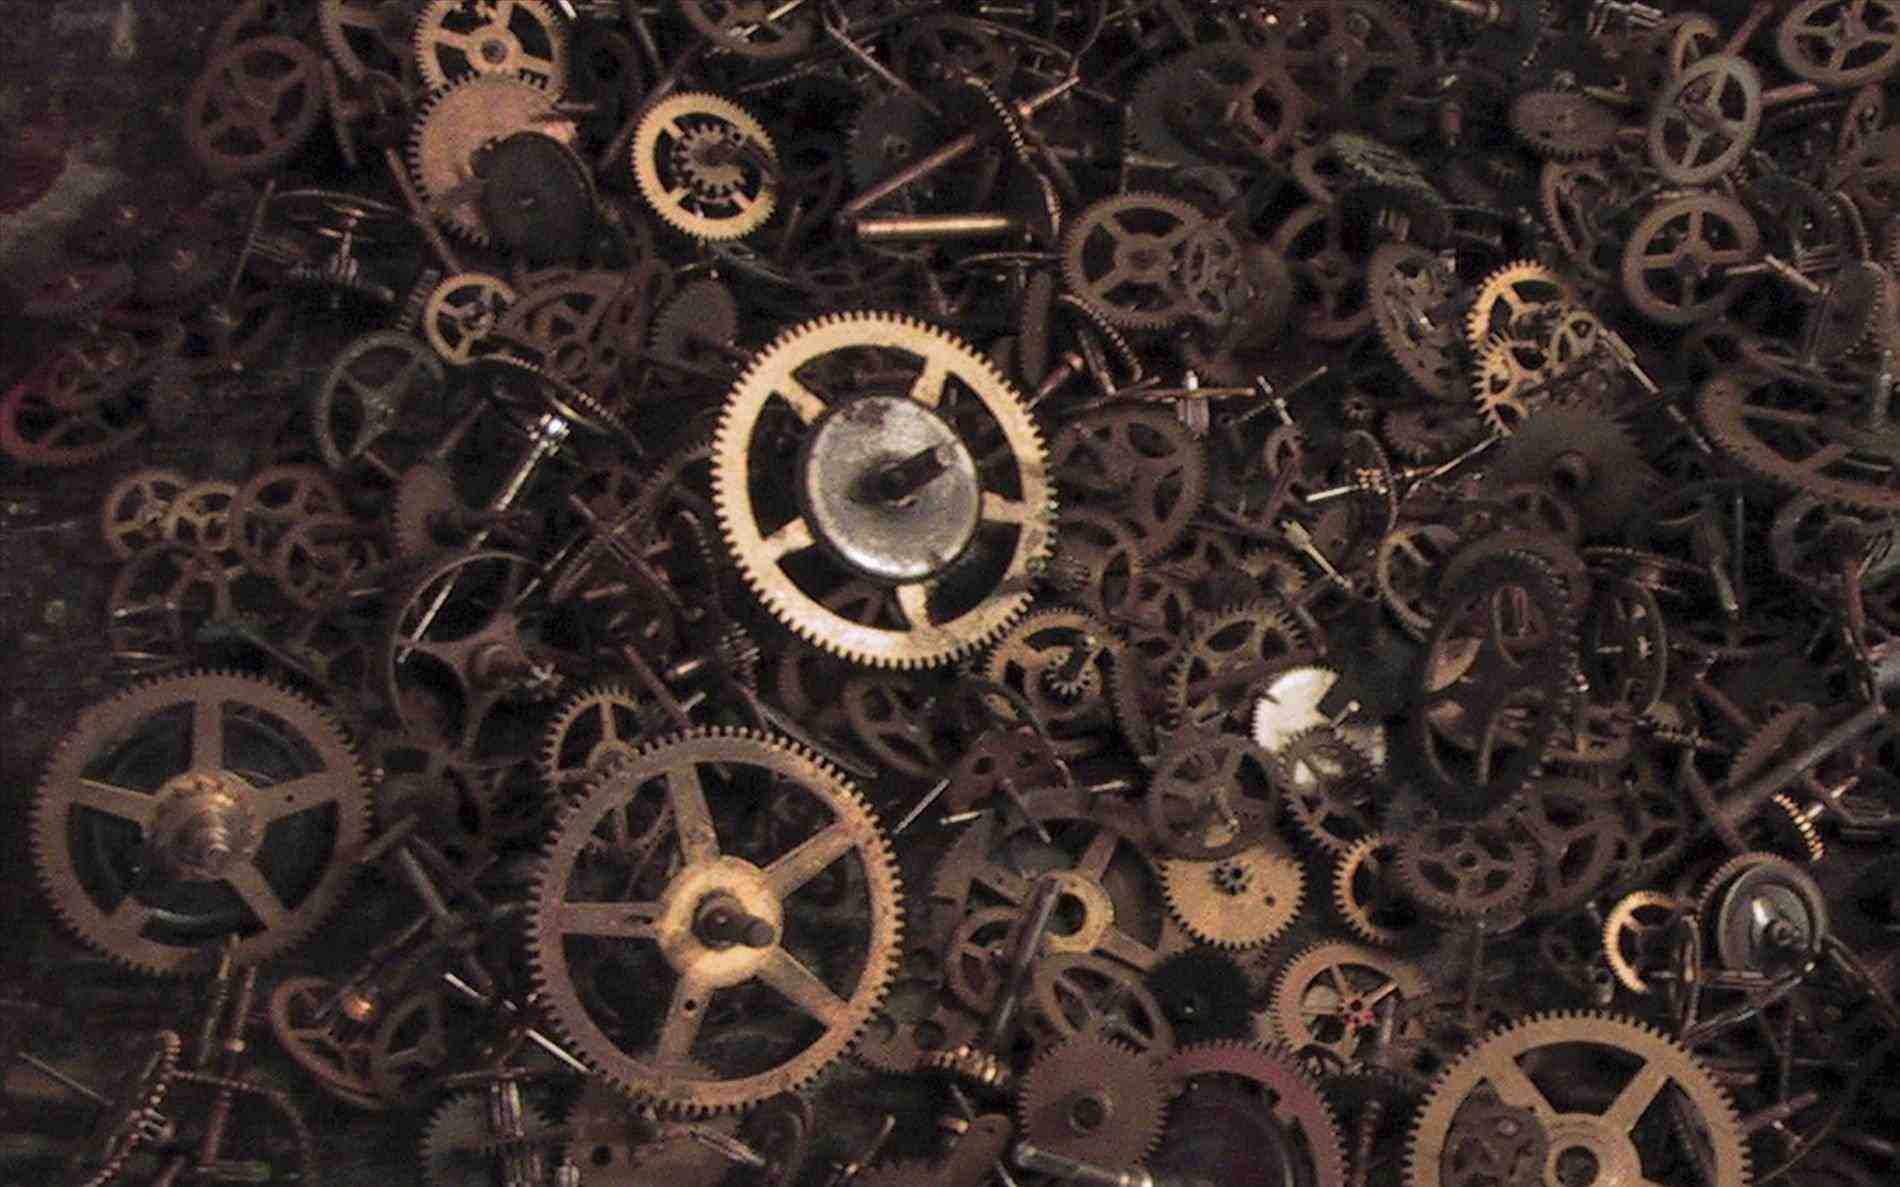 1900x1187 Steampunk Gears And Cogs Wallpaper